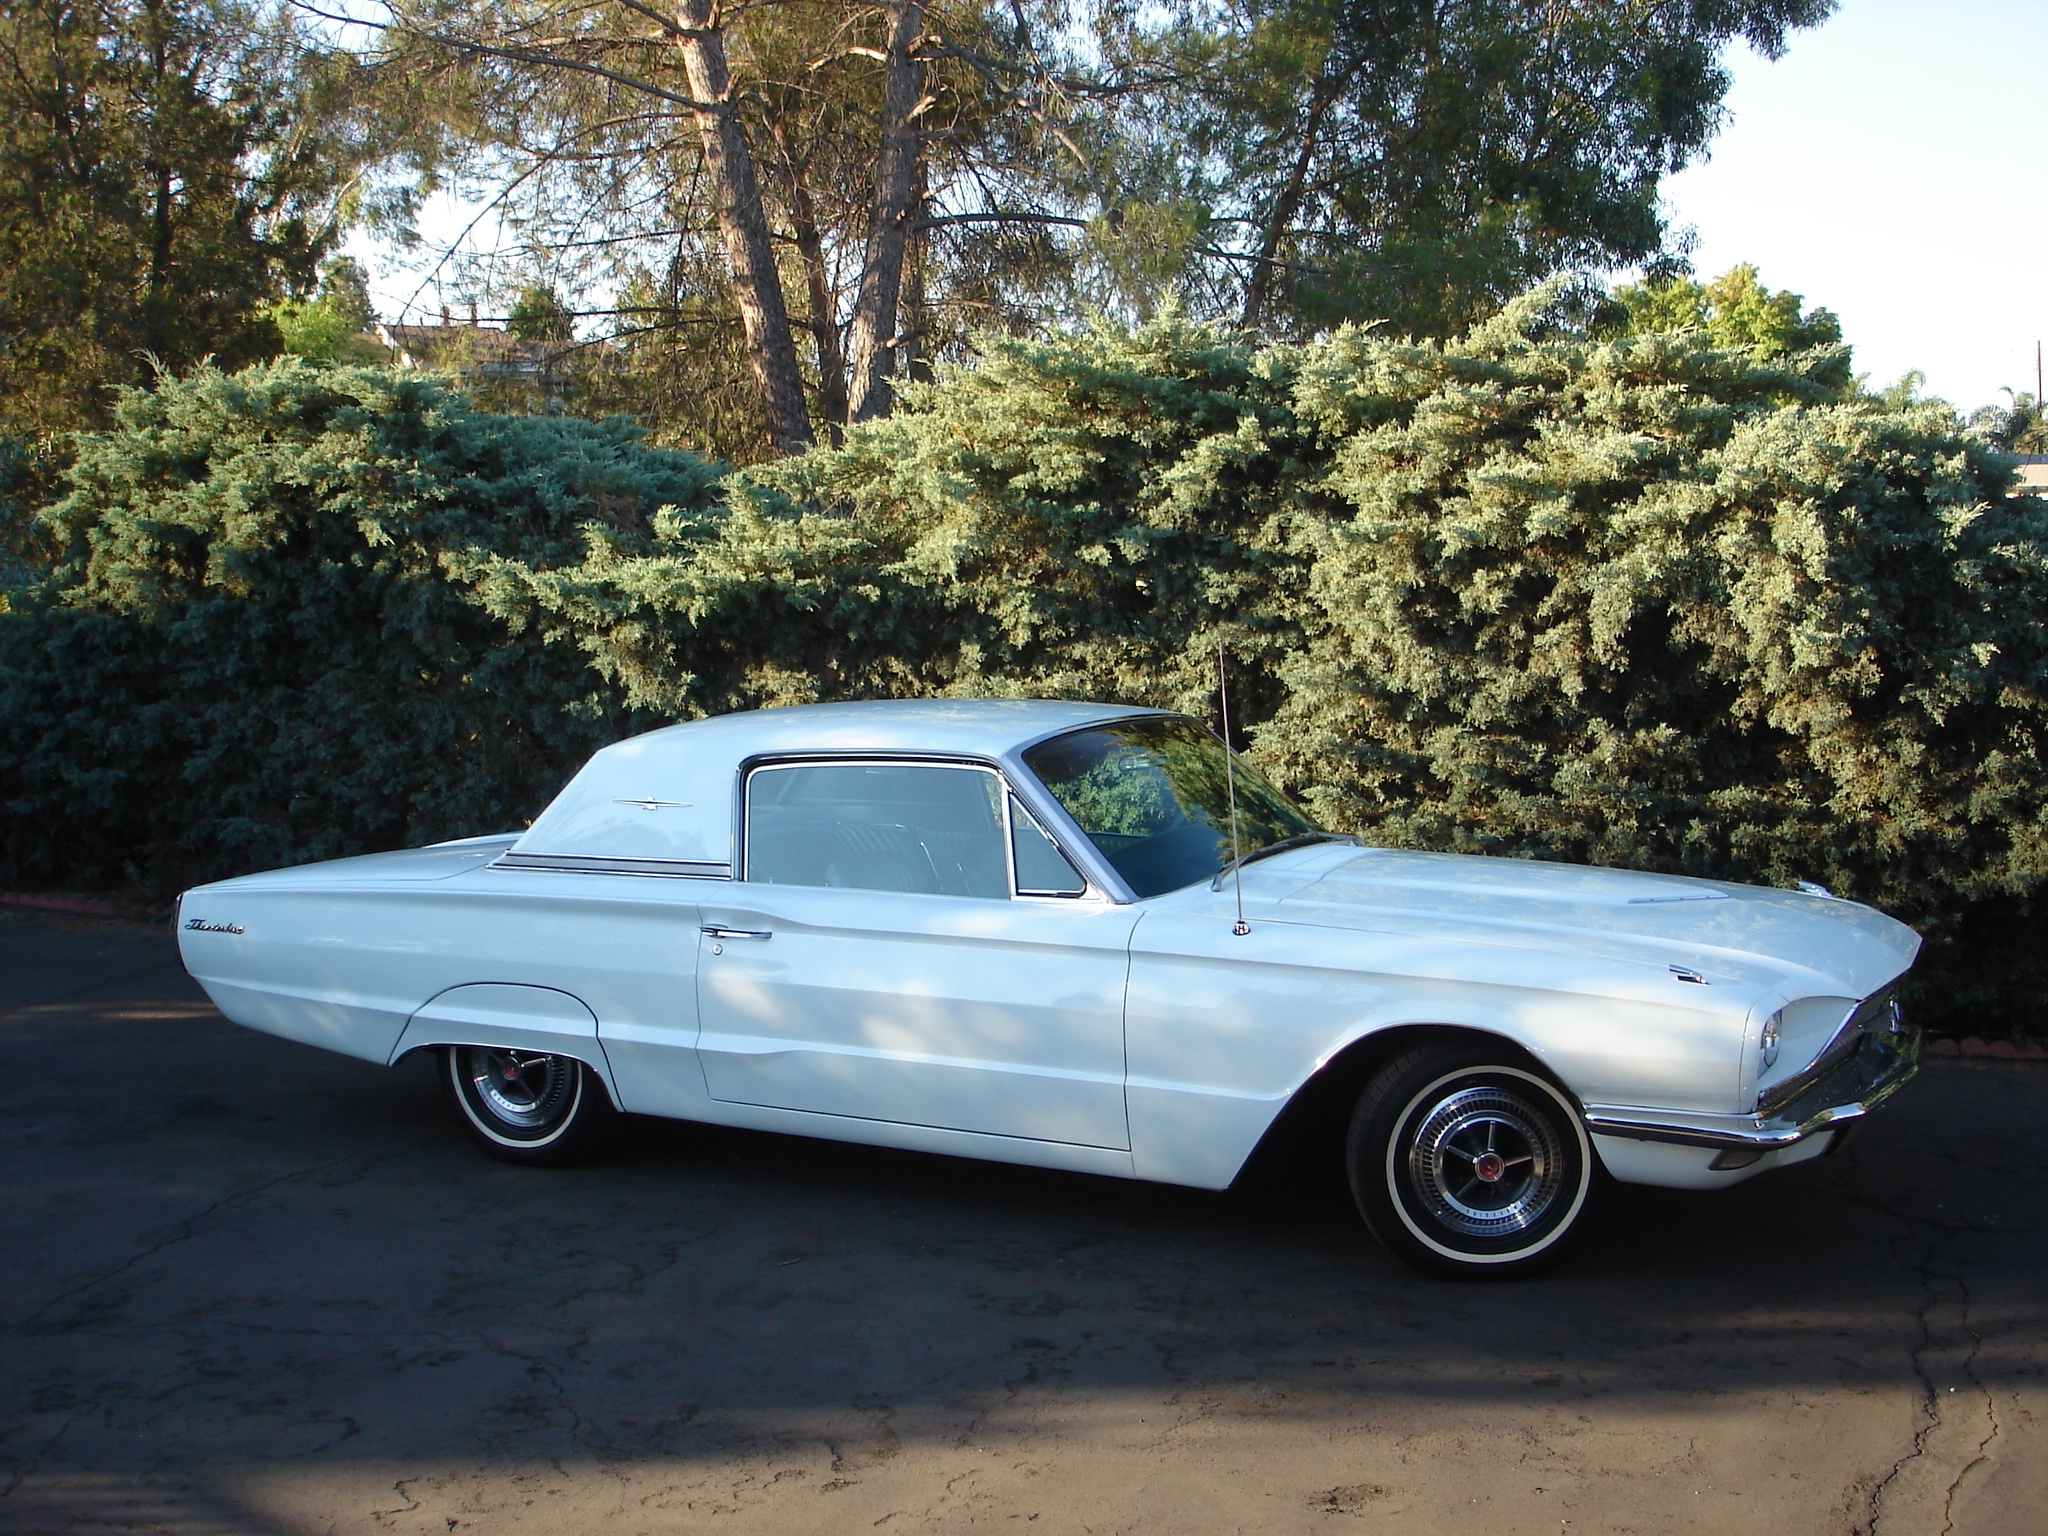 Mustangfeverrr 1966 Ford Thunderbird Specs, Photos, Modification Info At CarDomain